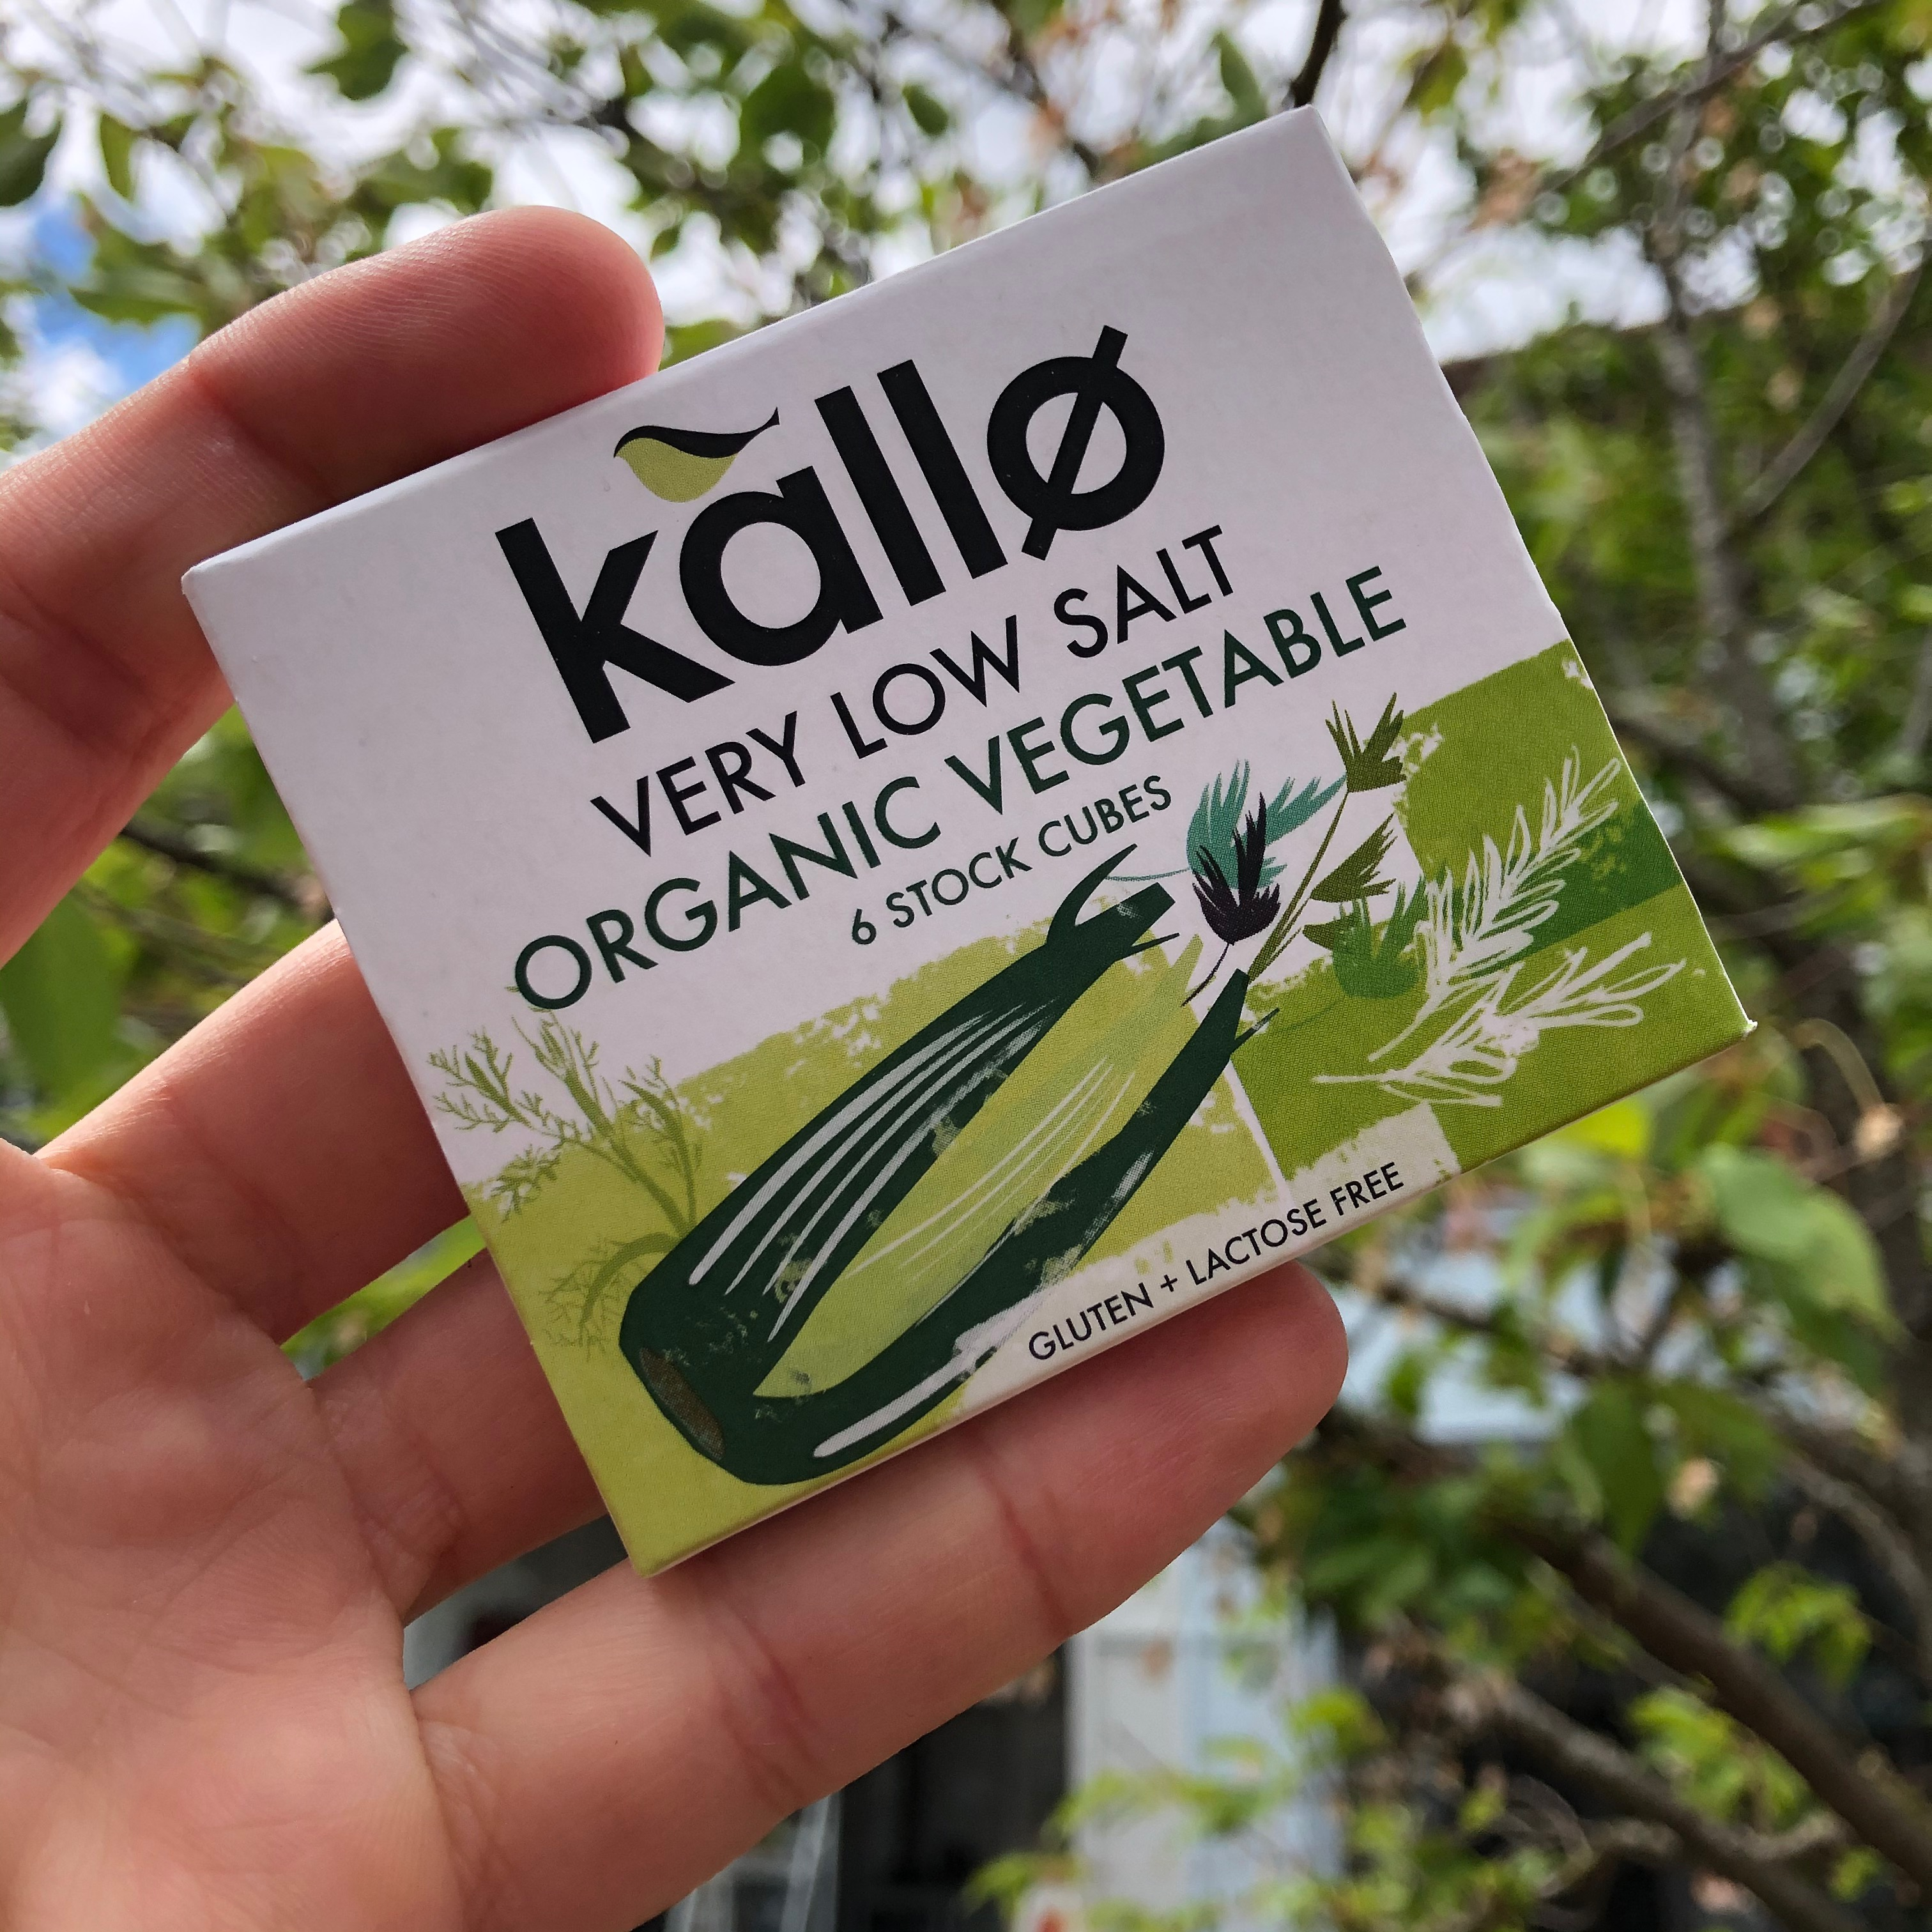 Kallo Very Low Salt Organic Veg Stock Cubes (6)